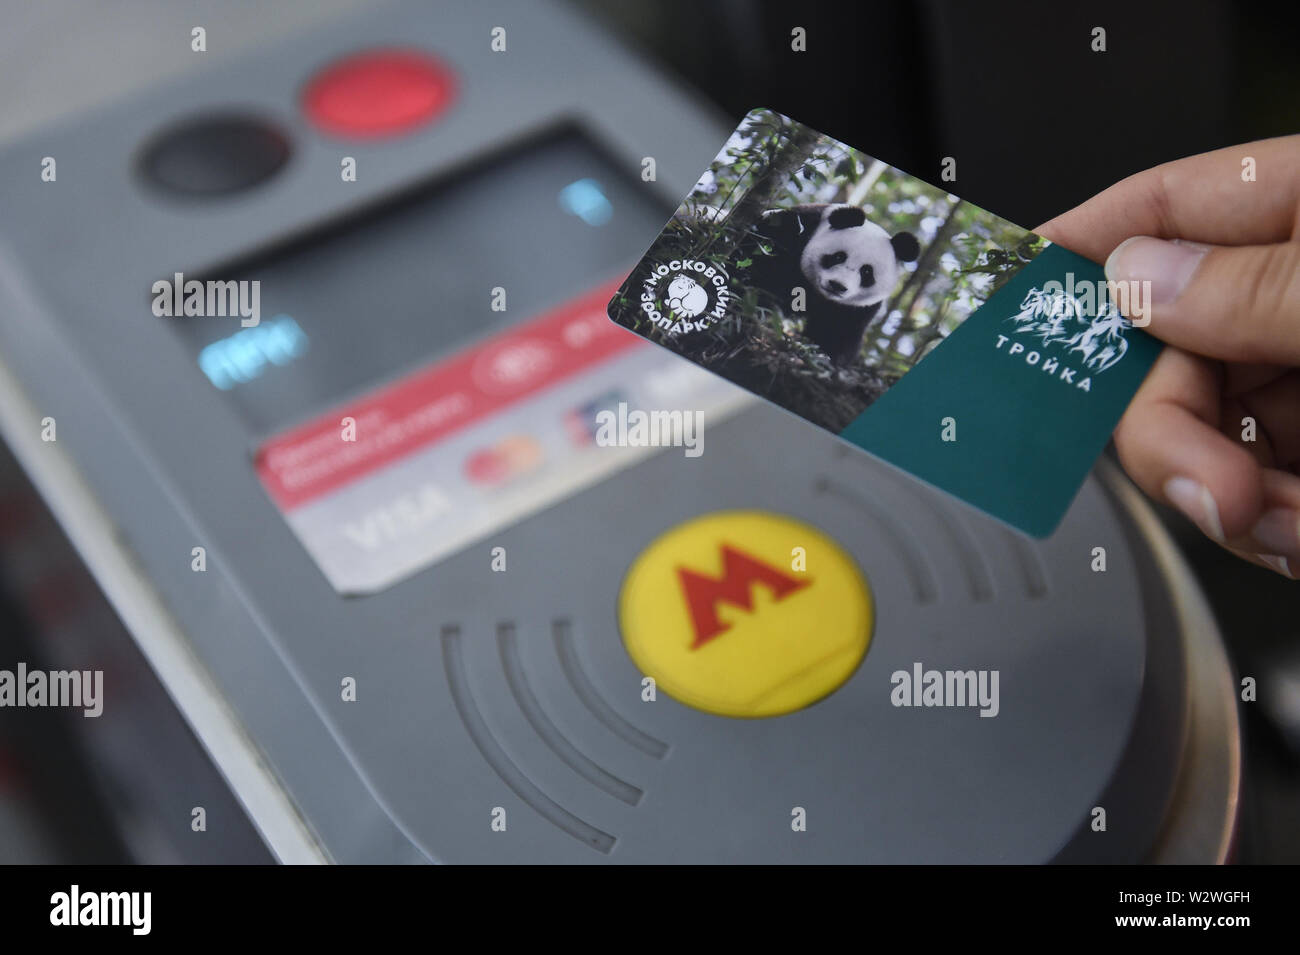 Beijing, China. 10th July, 2019. Photo taken on July 10, 2019 shows a limited edition metro card Troika with a giant panda image in Moscow, Russia. Credit: Evgeny Sinitsyn/Xinhua/Alamy Live News Stock Photo